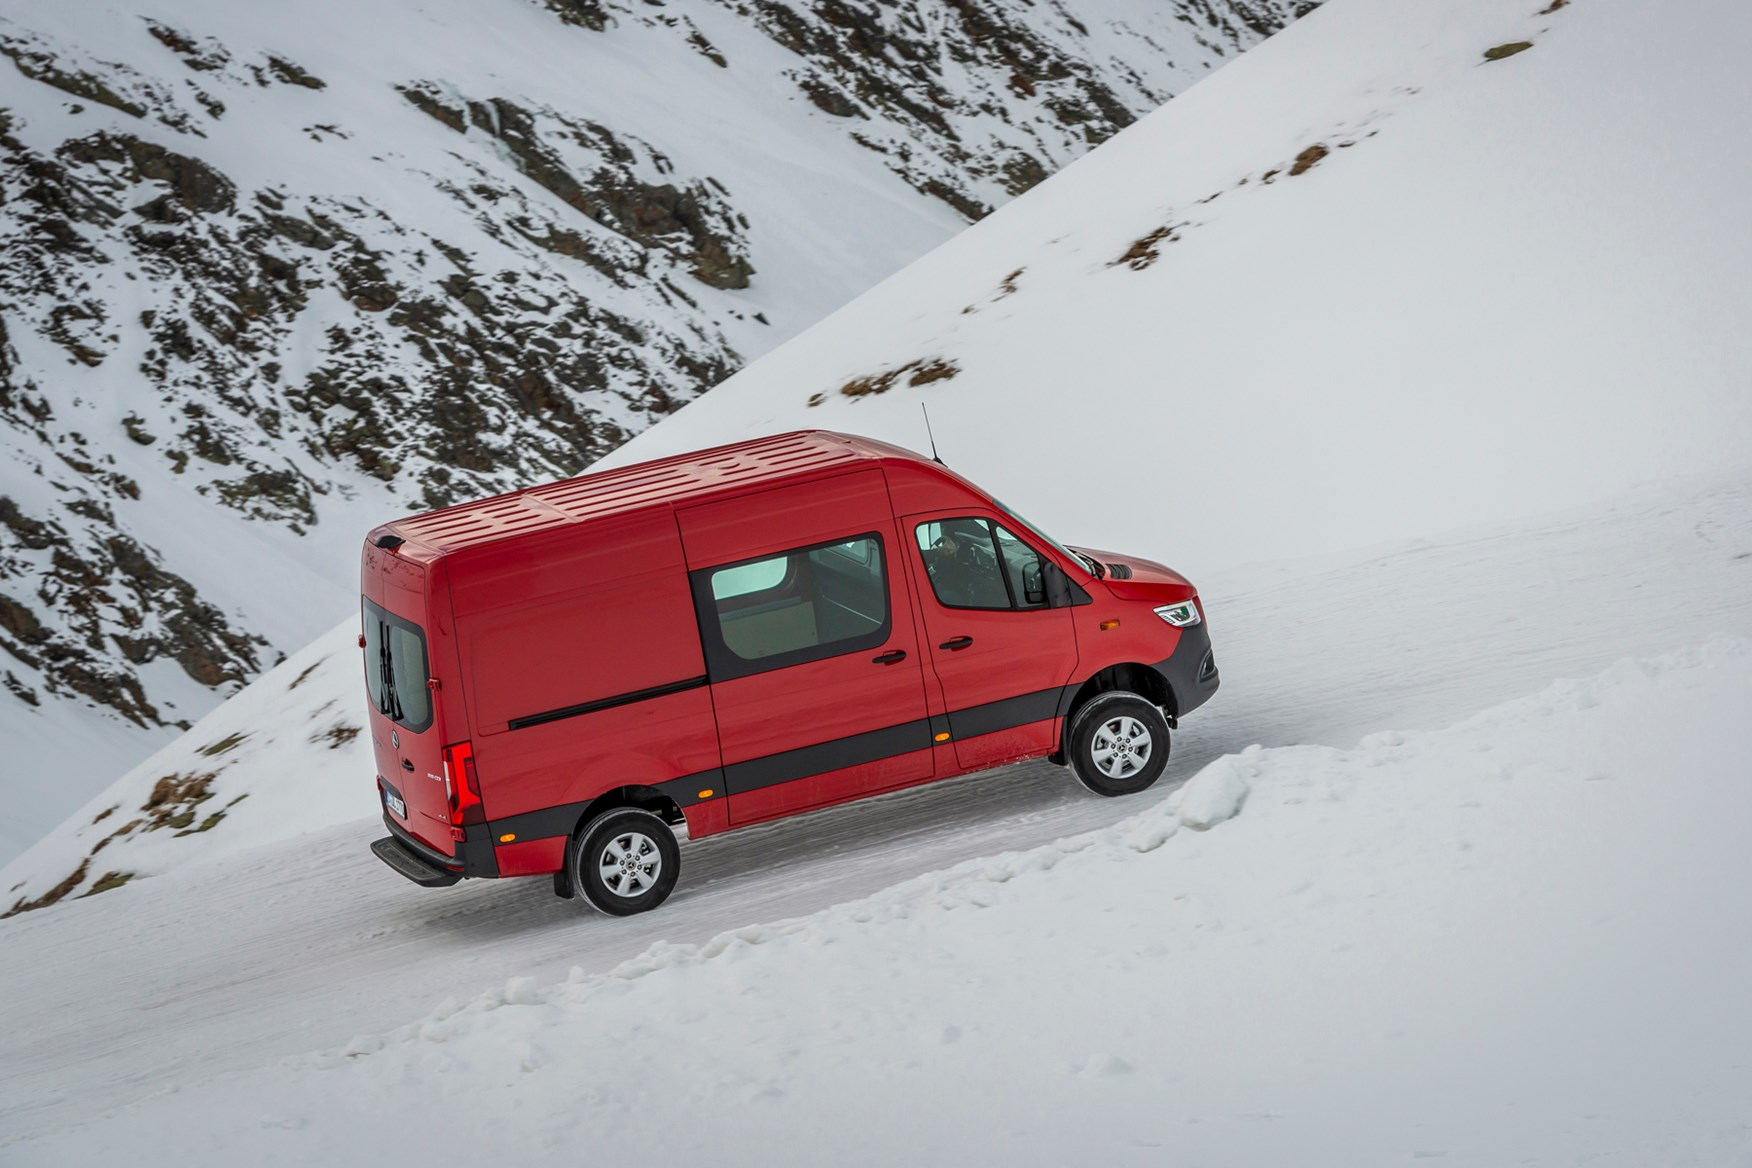 Driving the Mercedes Sprinter 4x4 off road highlighted its extra traction